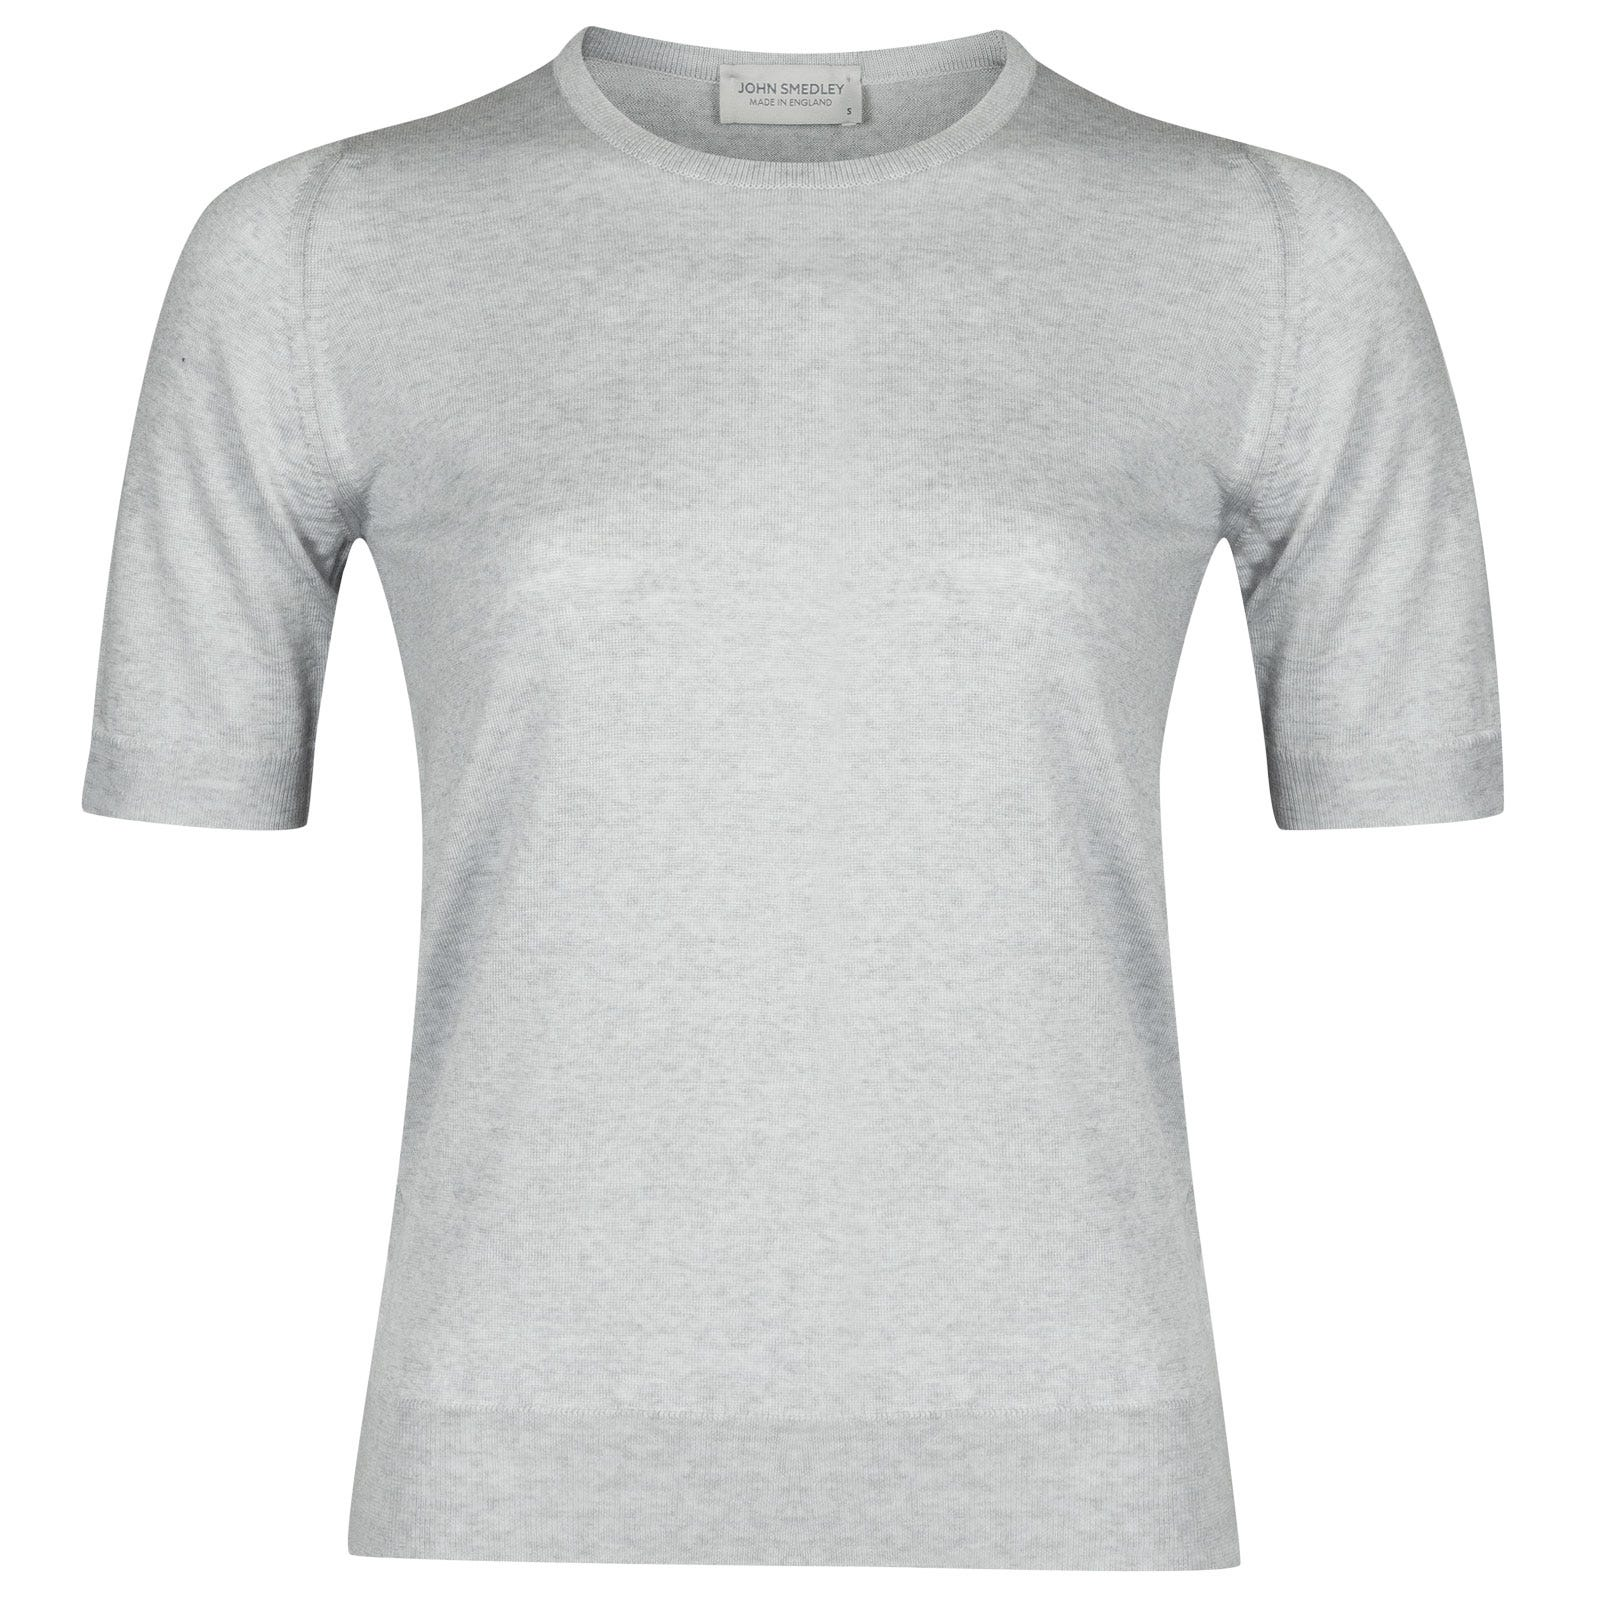 John Smedley trieste Merino Wool Sweater in Bardot Grey-L